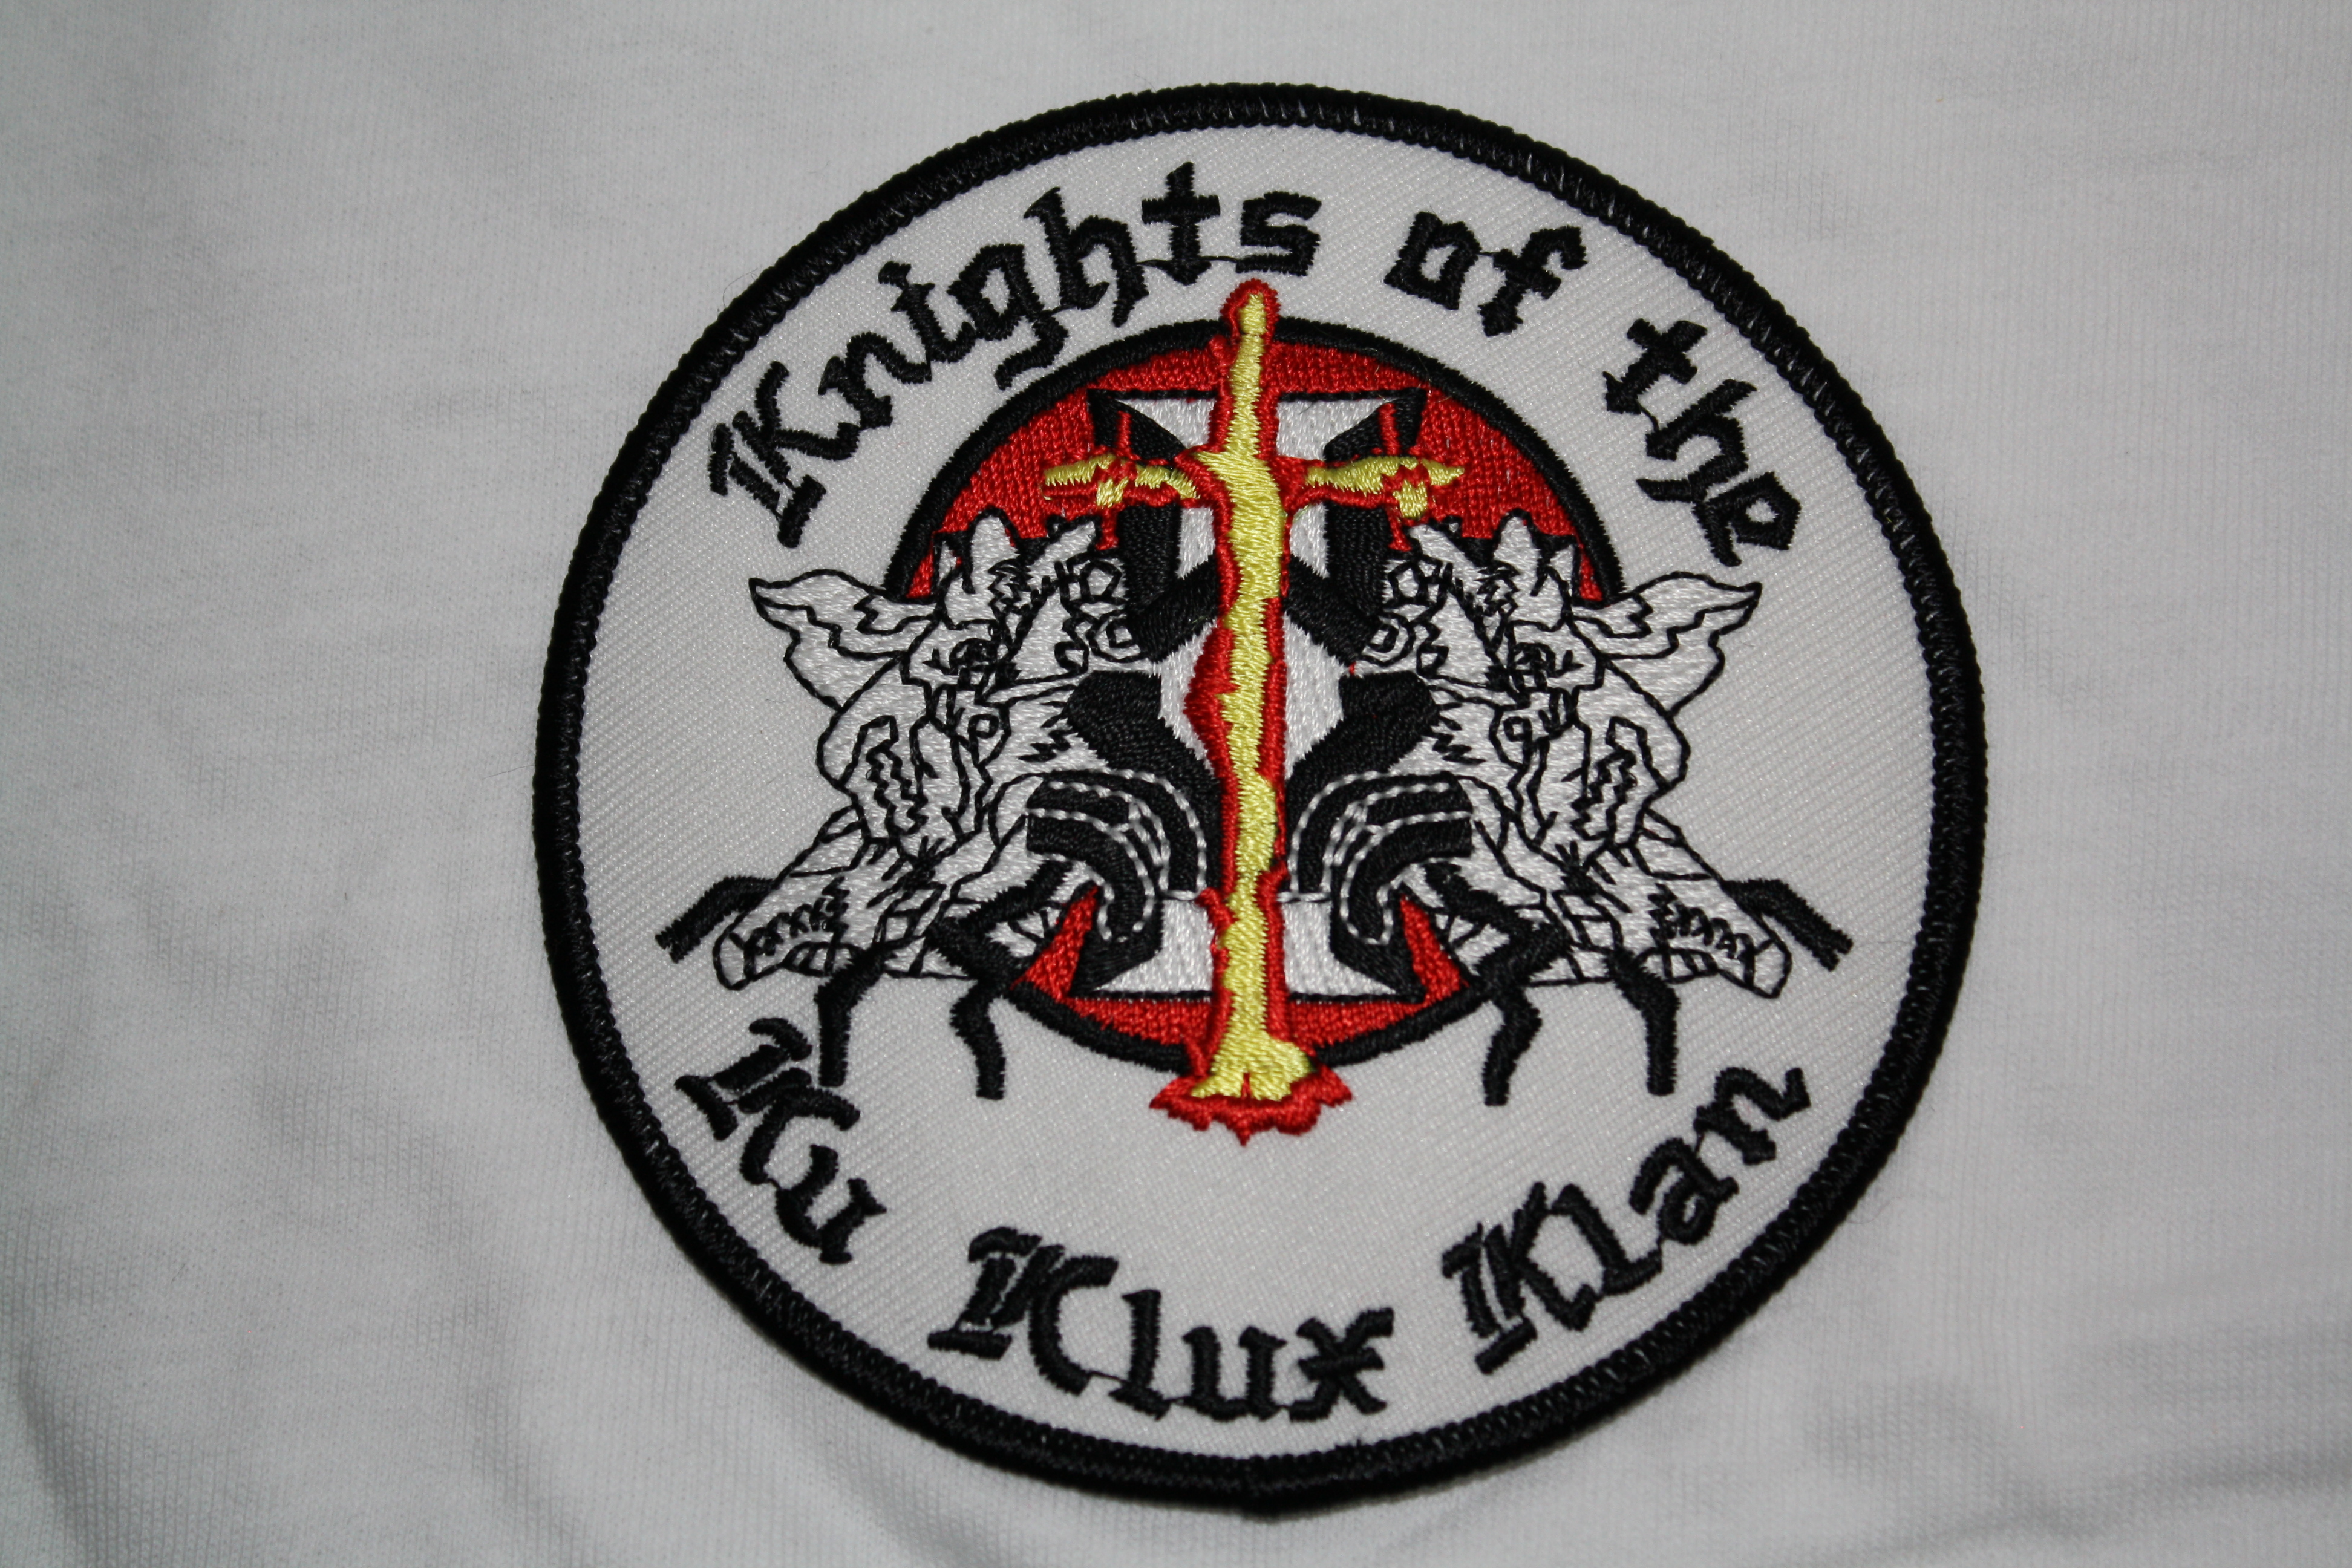 Knights of The Ku Klux Klan - Patch